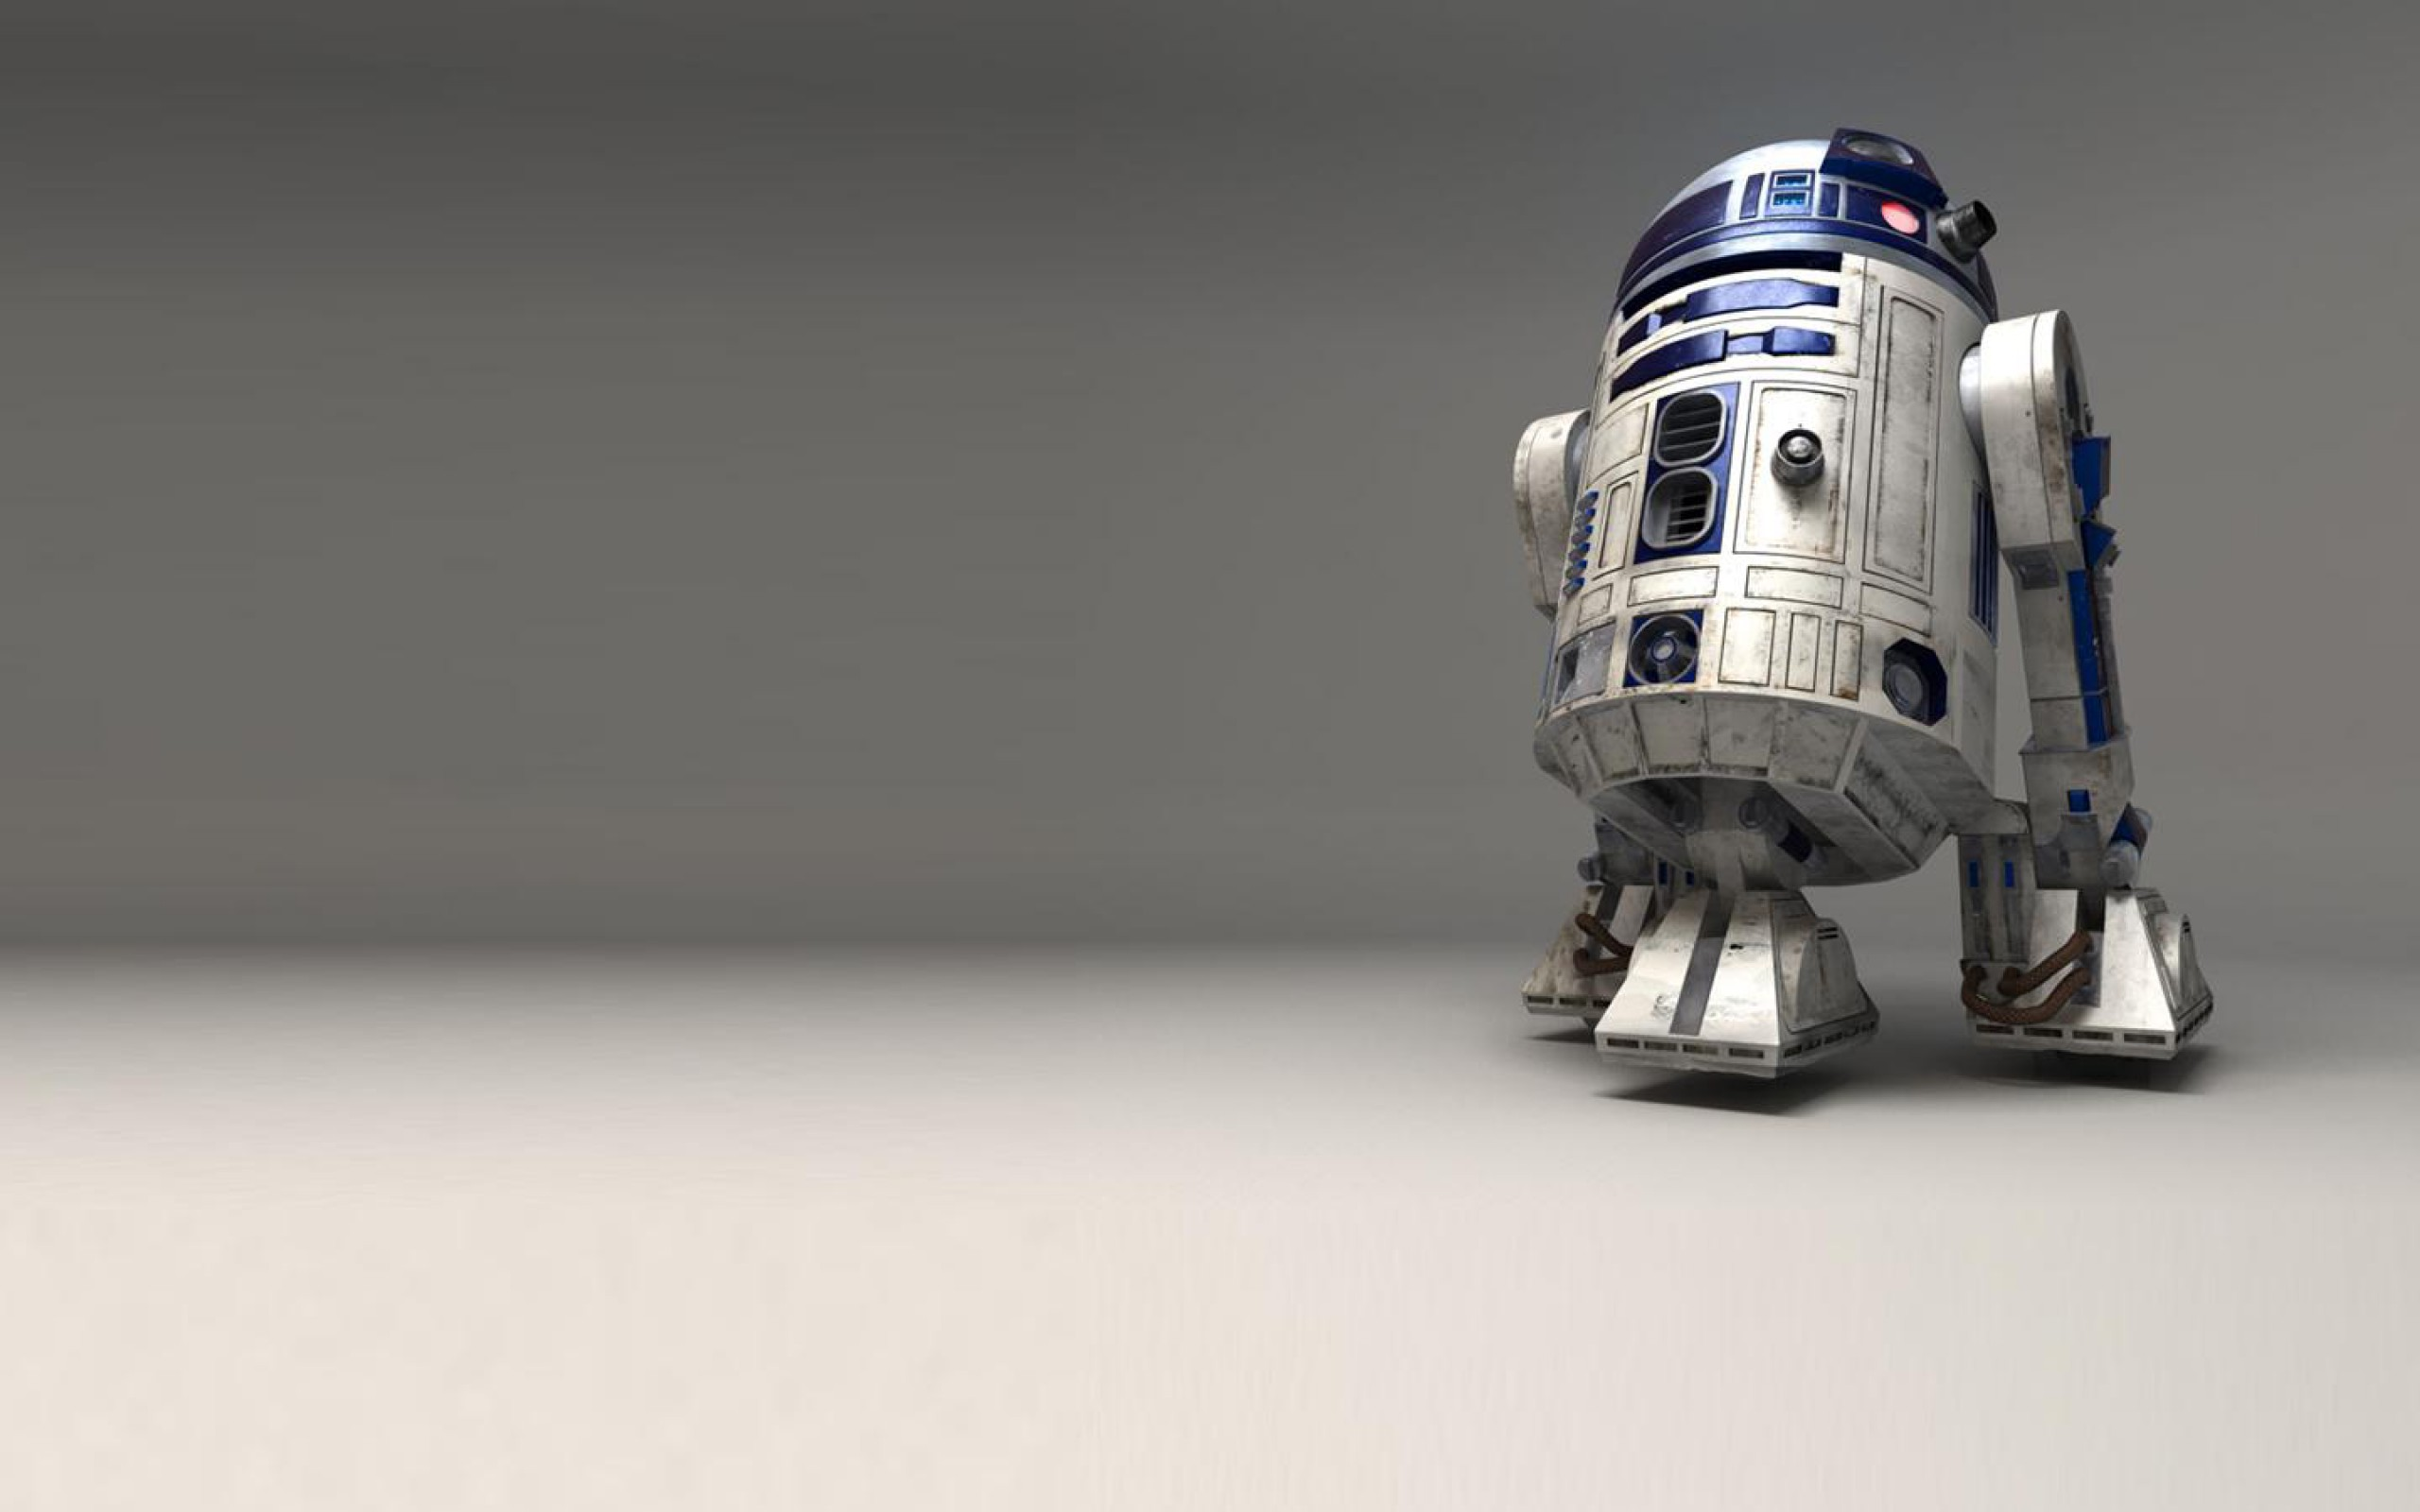 Best Star Wars Hd And 4 K Wallpapers For Phone And R2d2 Wallpaper 4k 1392x870 Wallpaper Teahub Io